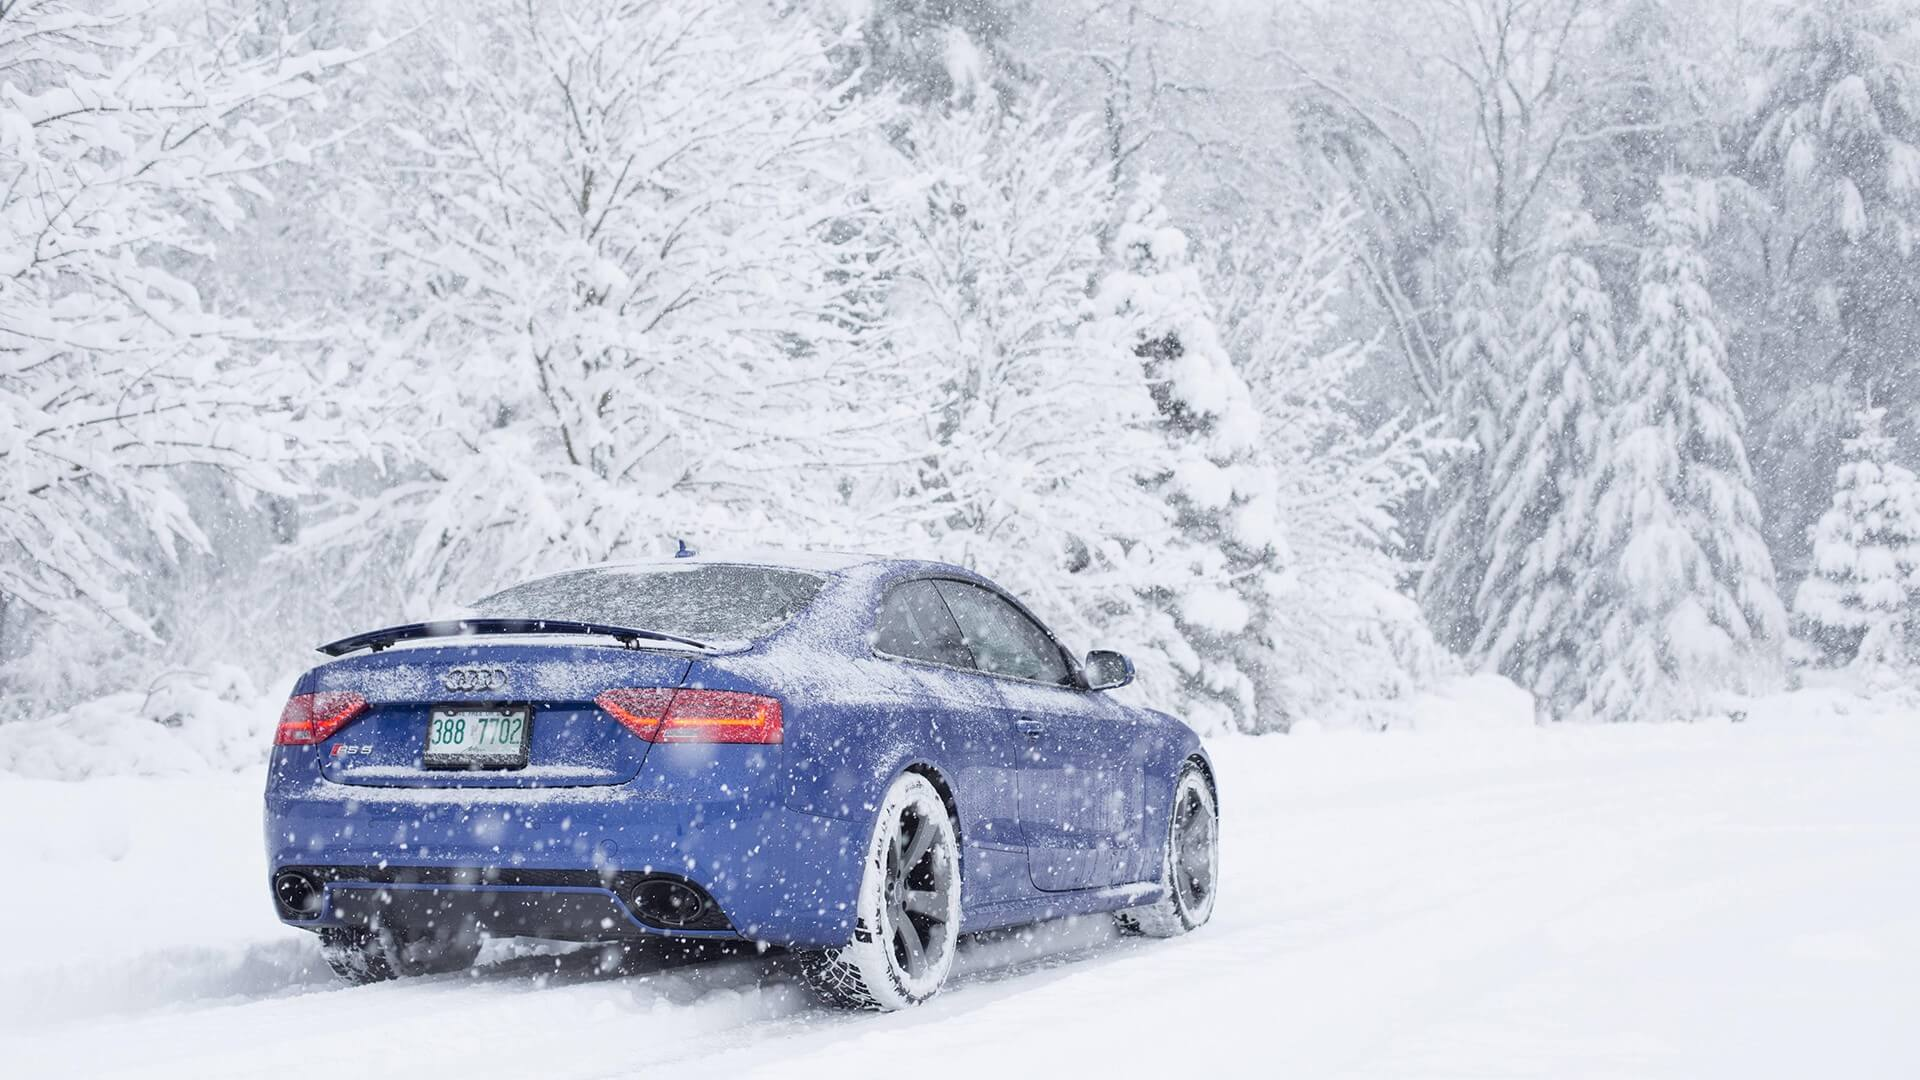 What to do if you get stranded in the snow in your car